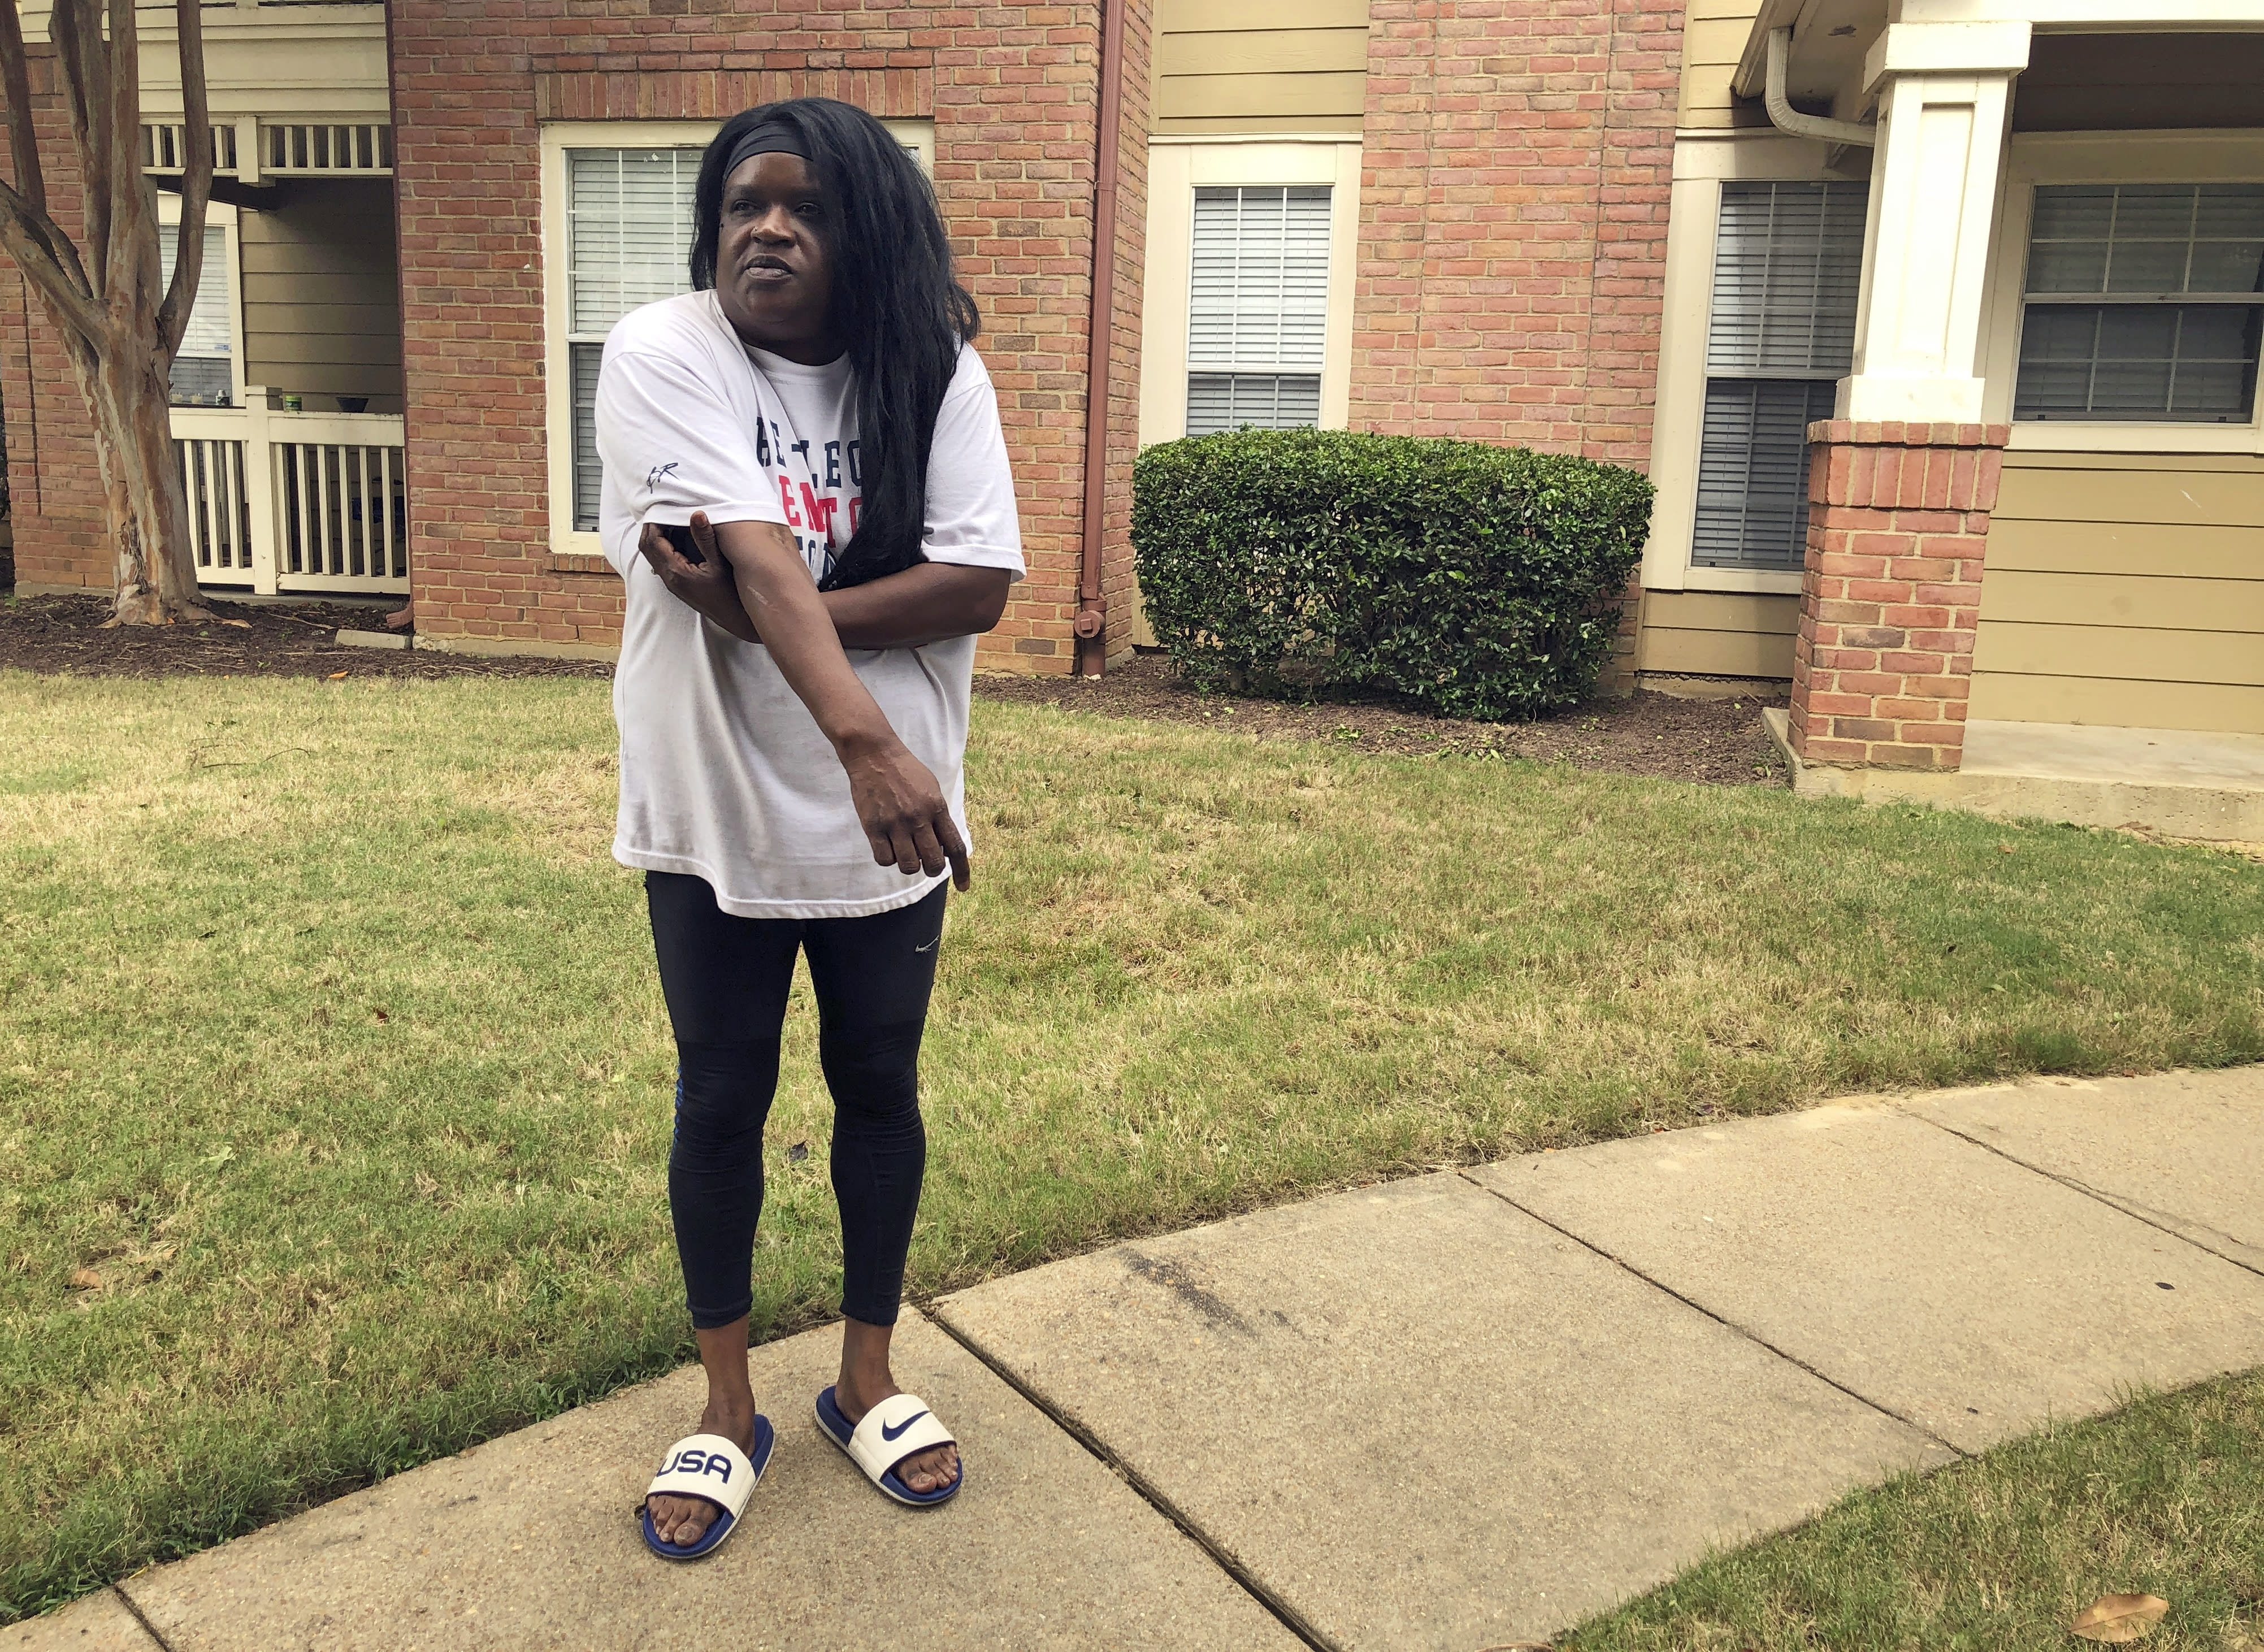 Postal worker's mother says he was bullied before shooting